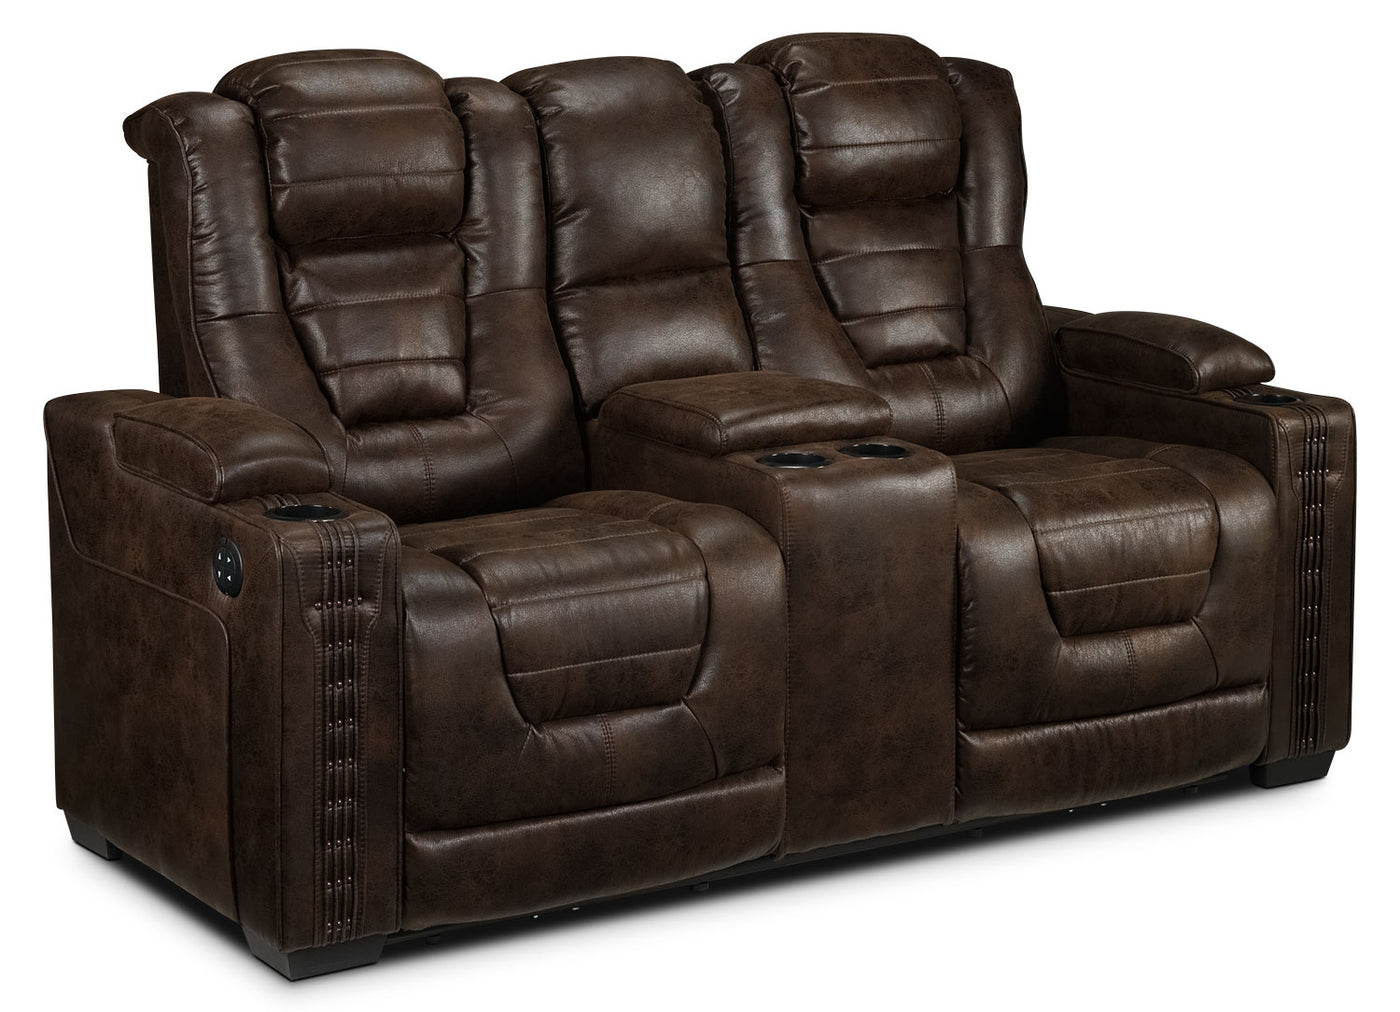 Fabulous Dakota Power Reclining Loveseat Walnut Inzonedesignstudio Interior Chair Design Inzonedesignstudiocom